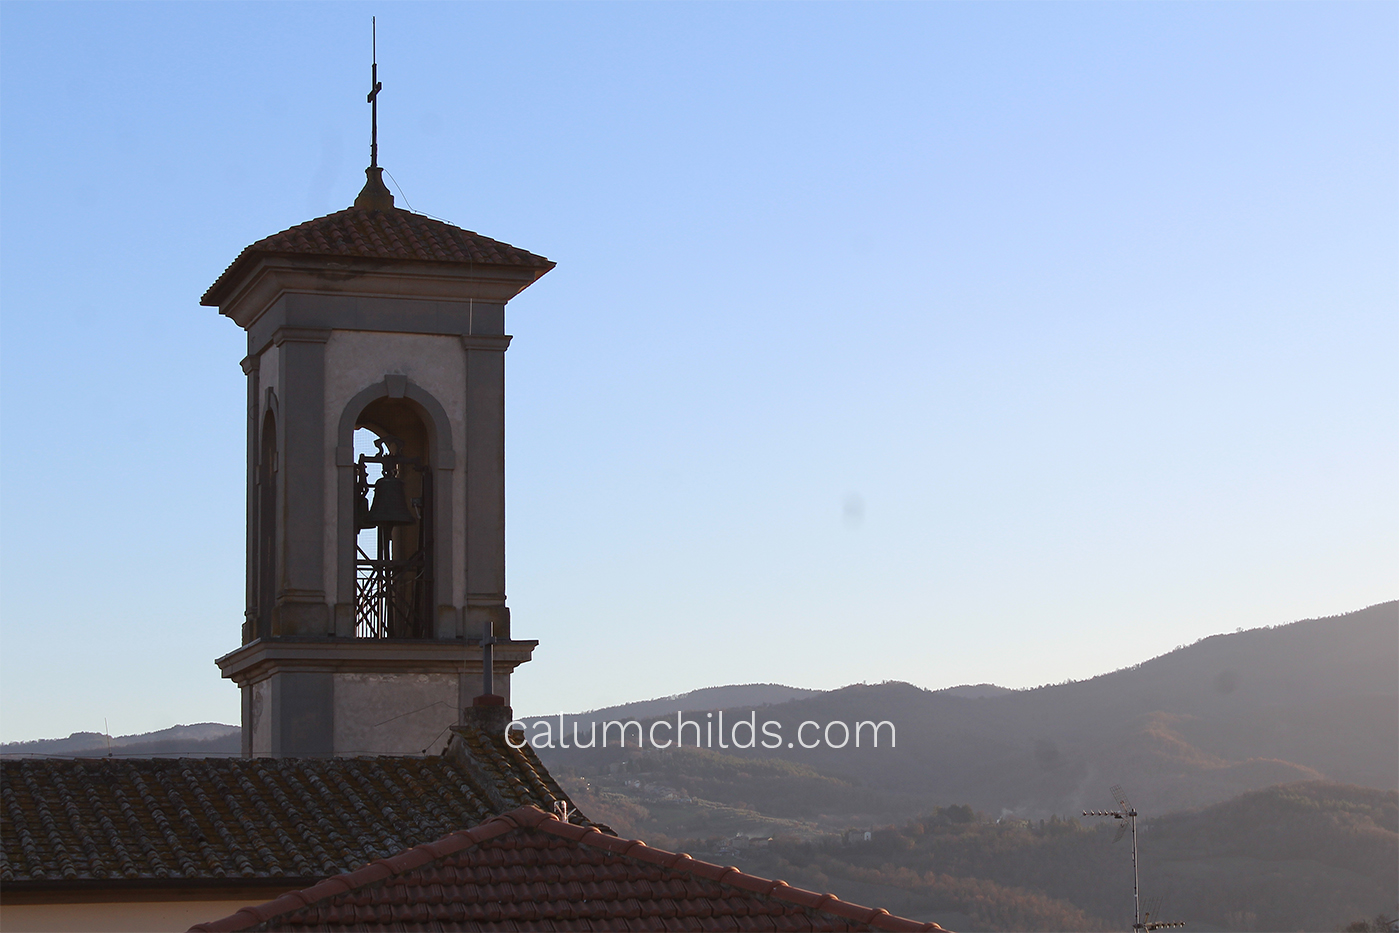 A church spire (left) and a view of the mountains (right).